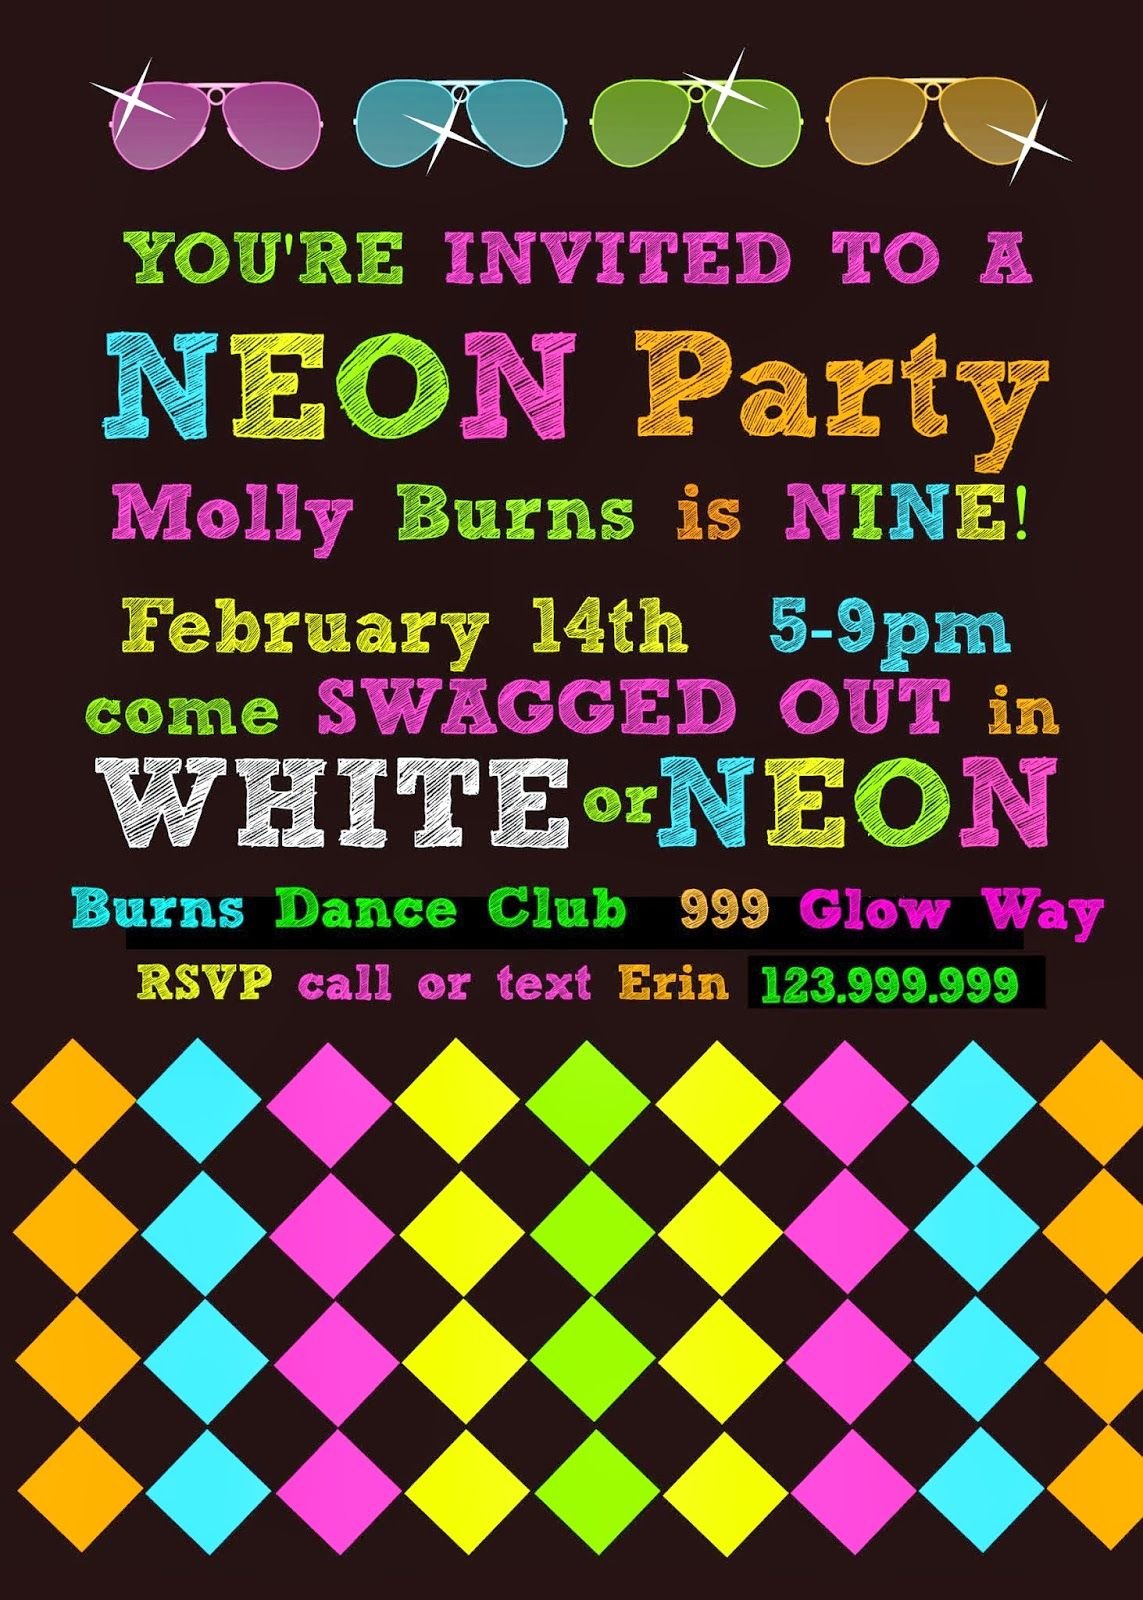 bringing up burns: molly's ninth neon/glow in the dark dance, Party invitations